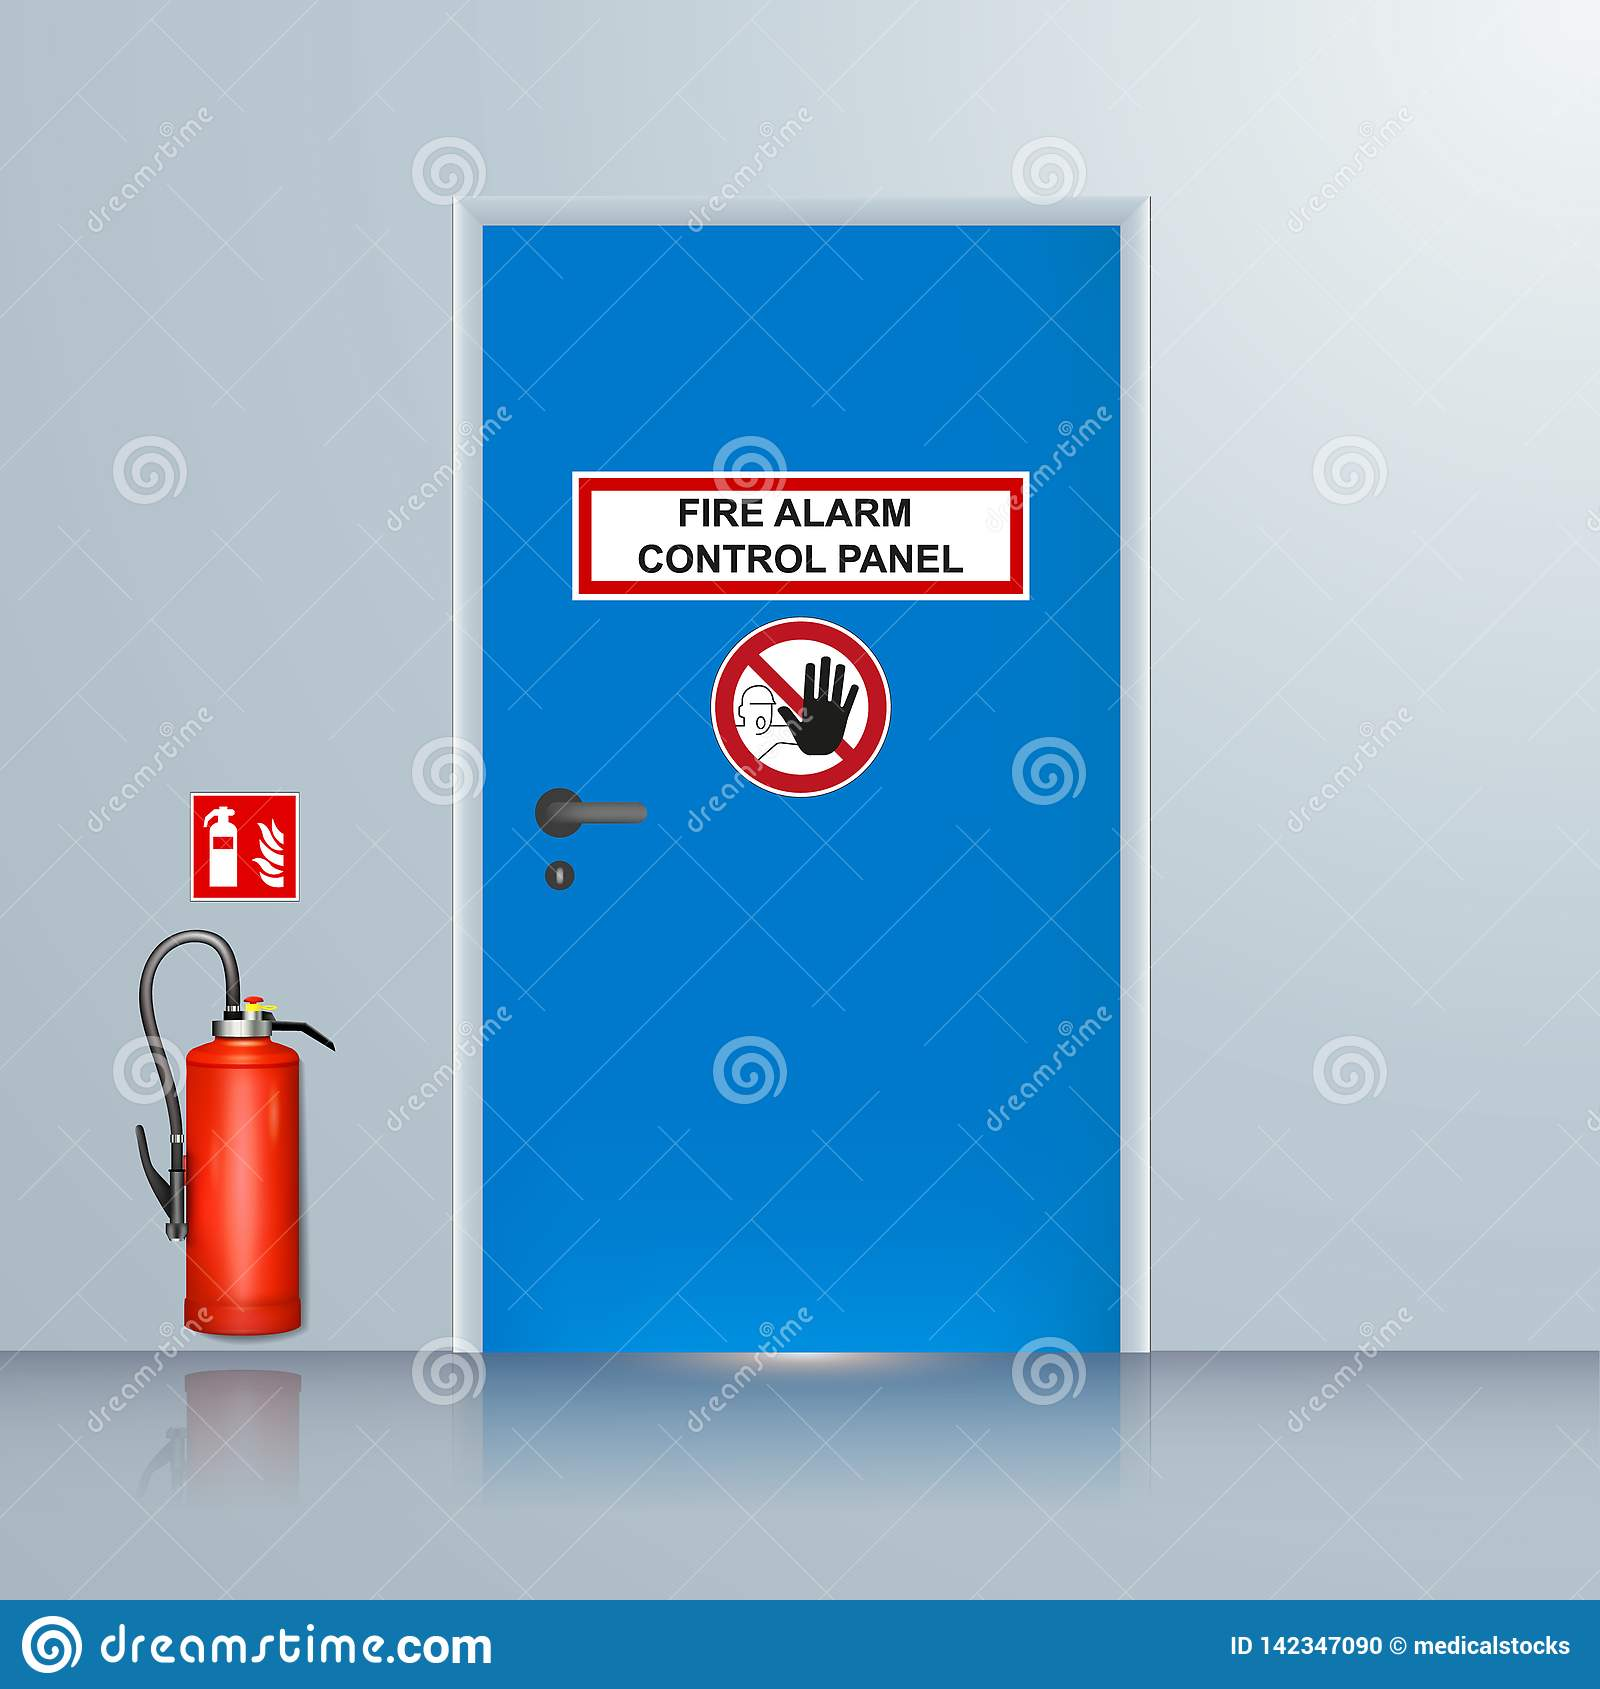 Fire alarm system room vector illustration